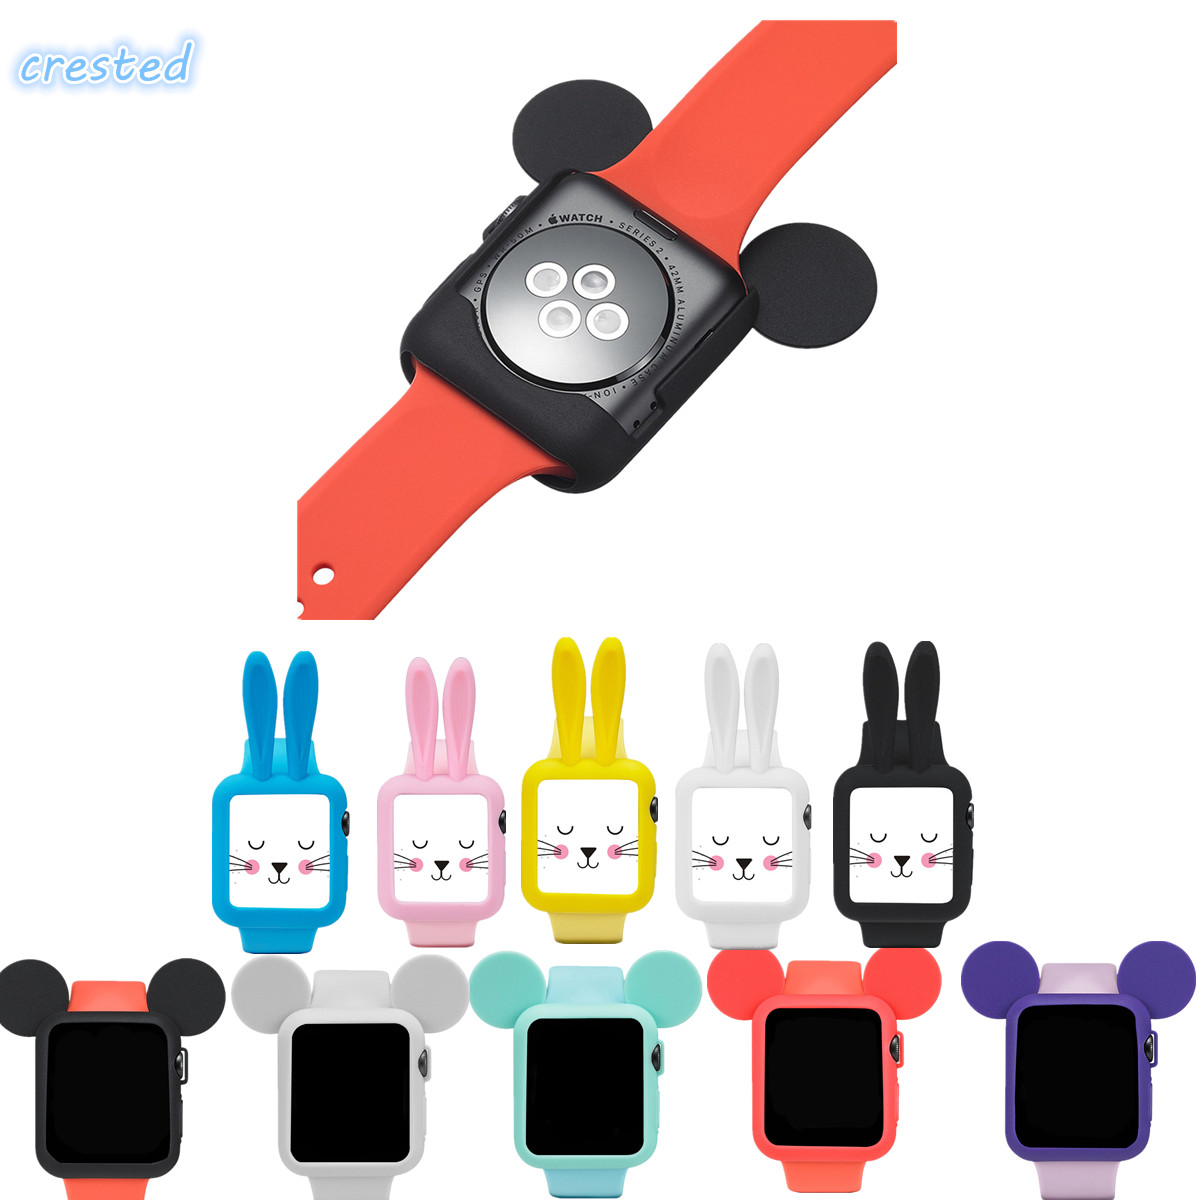 CRESTED Cute cartoon Mouse rabbit ears Soft Silicone protective for Apple Watch case iWatch 1/2 42 mm/38 Colorful cover shell